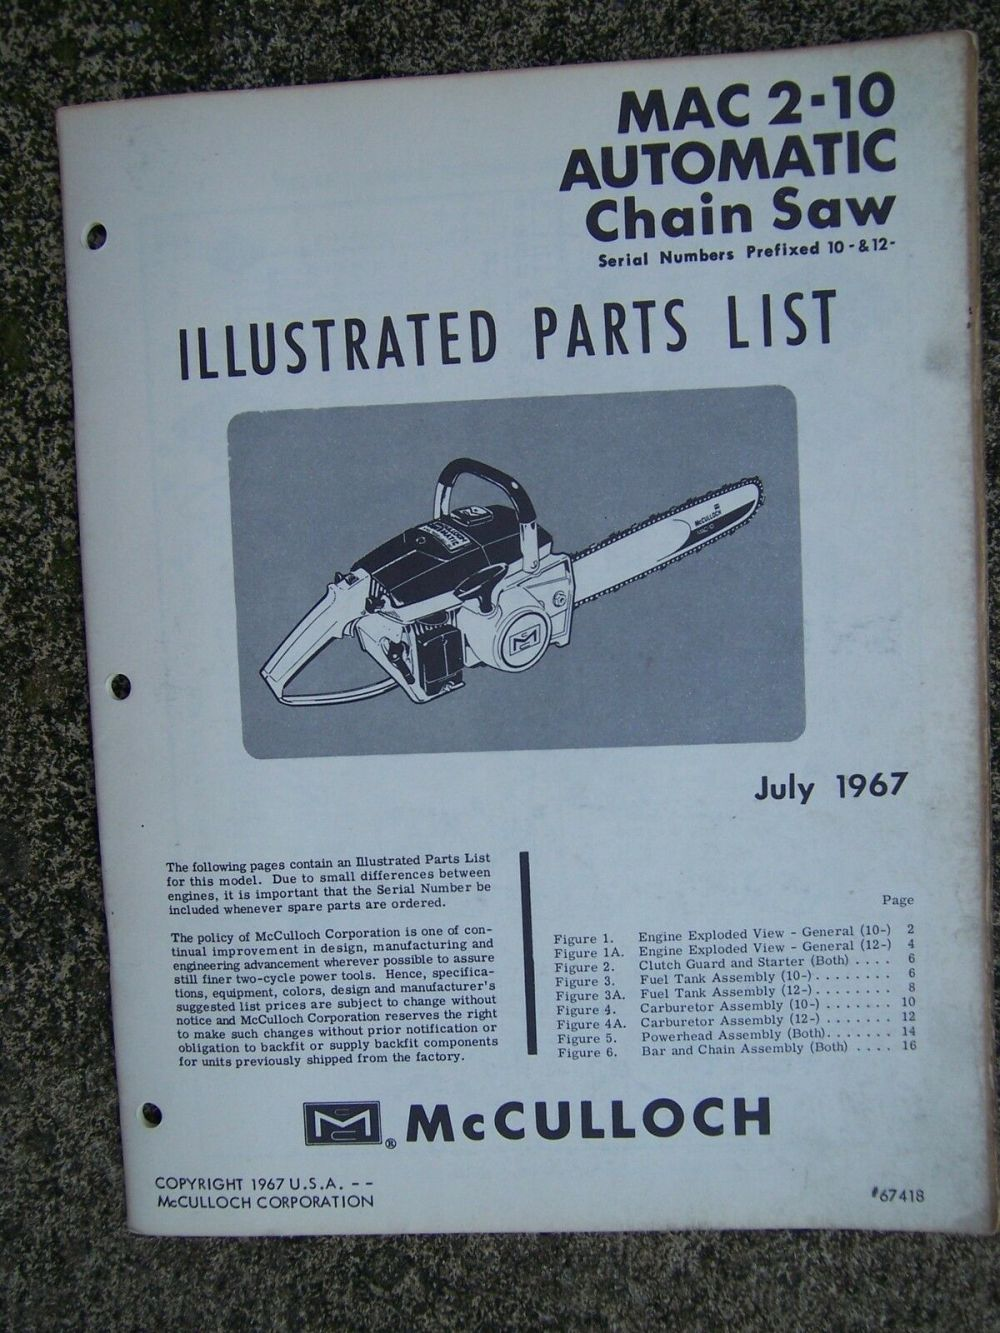 medium resolution of 1967 mcculloch mac 2 10 automatic chain saw illustrated parts list power tool v